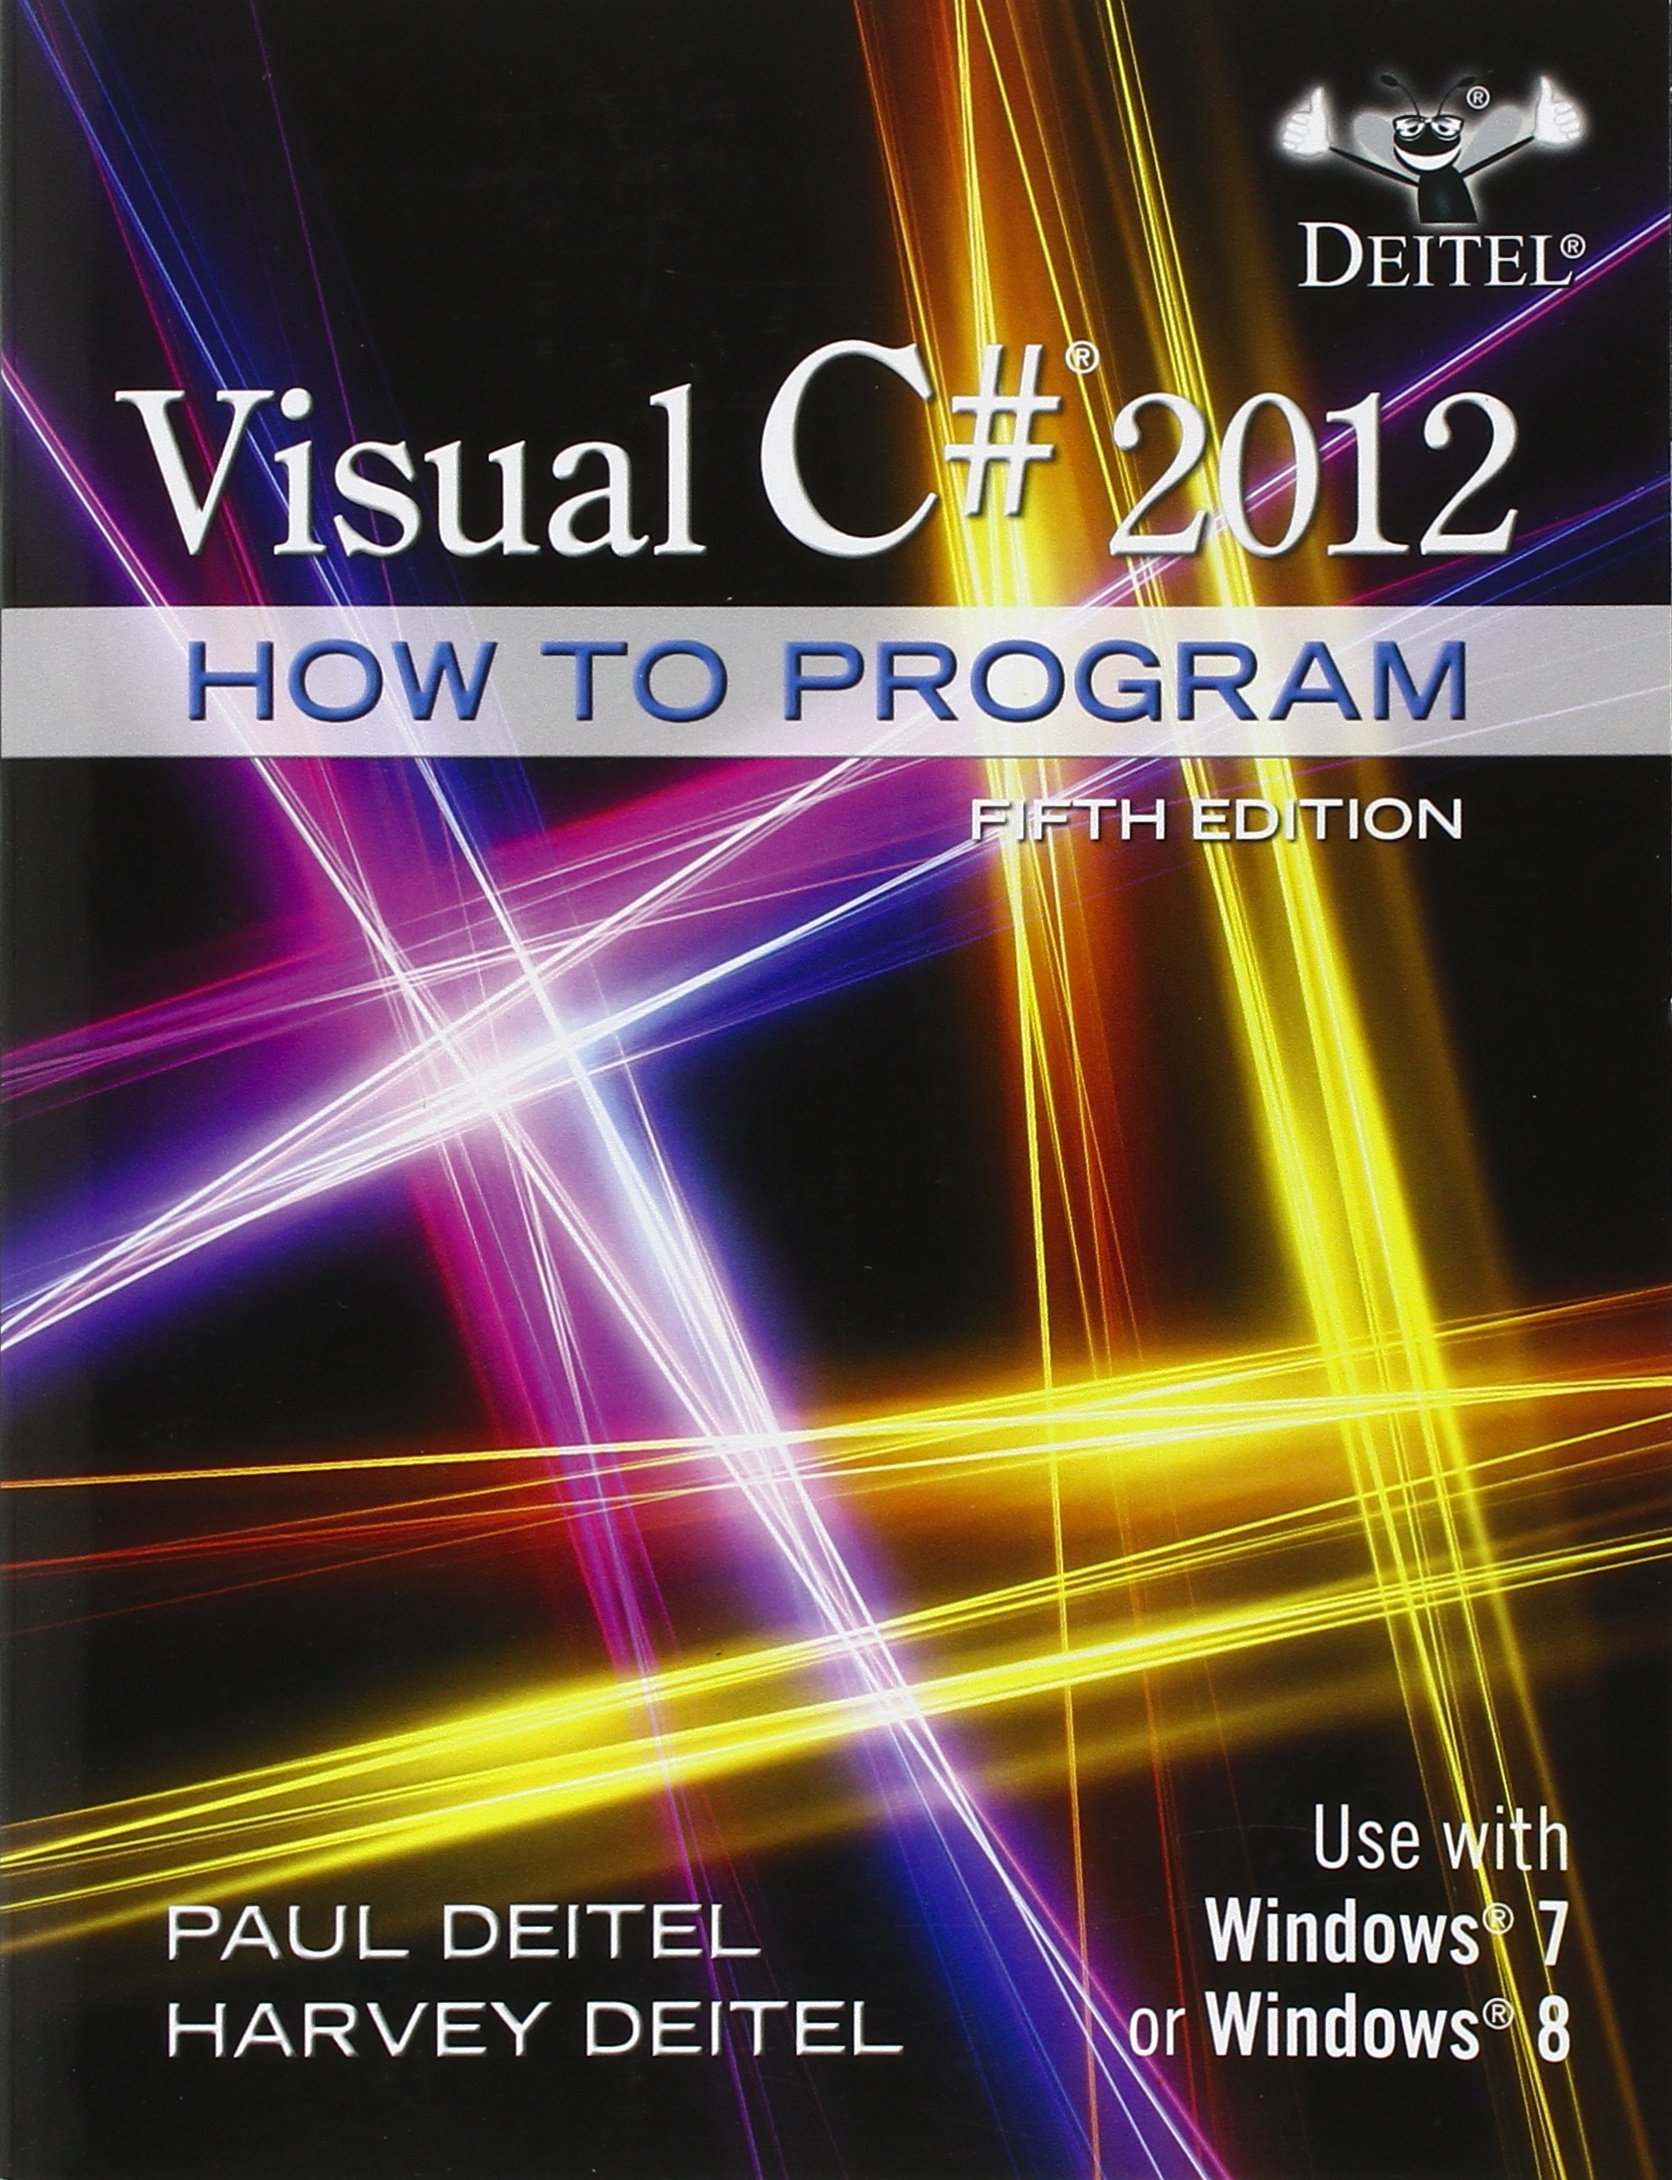 Visual C# 2012 How to Program (5th Edition): Paul J. Deitel, Harvey Deitel:  9780133379334: Books - Amazon.ca